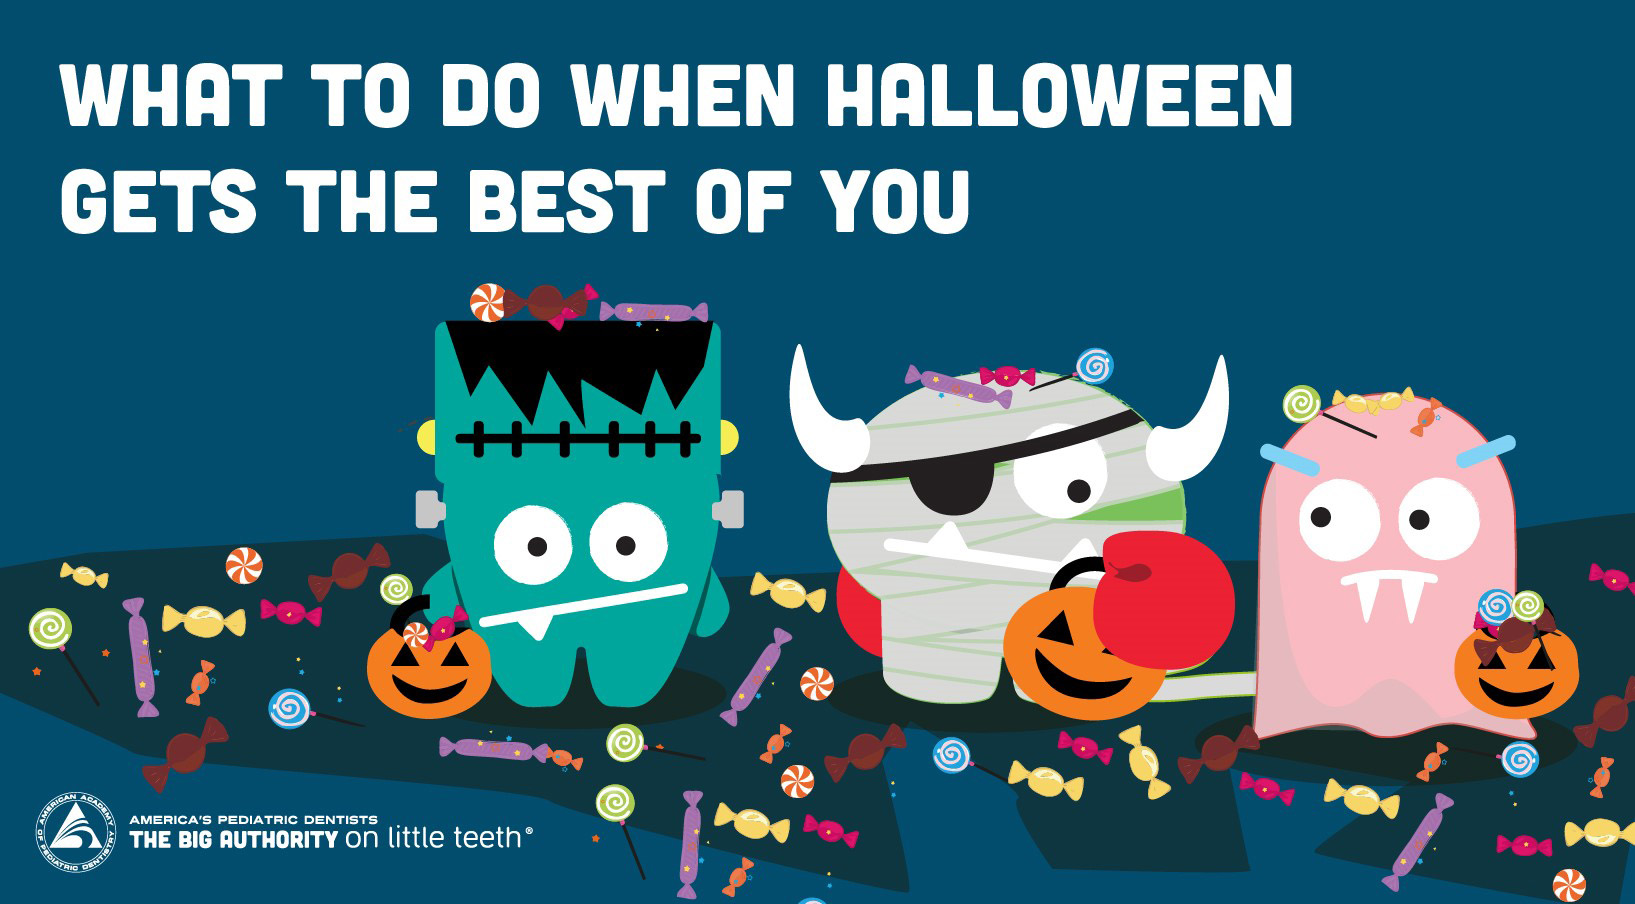 Banner that says What to do when Halloween gets the best of you, with three cartoon images of monsters.